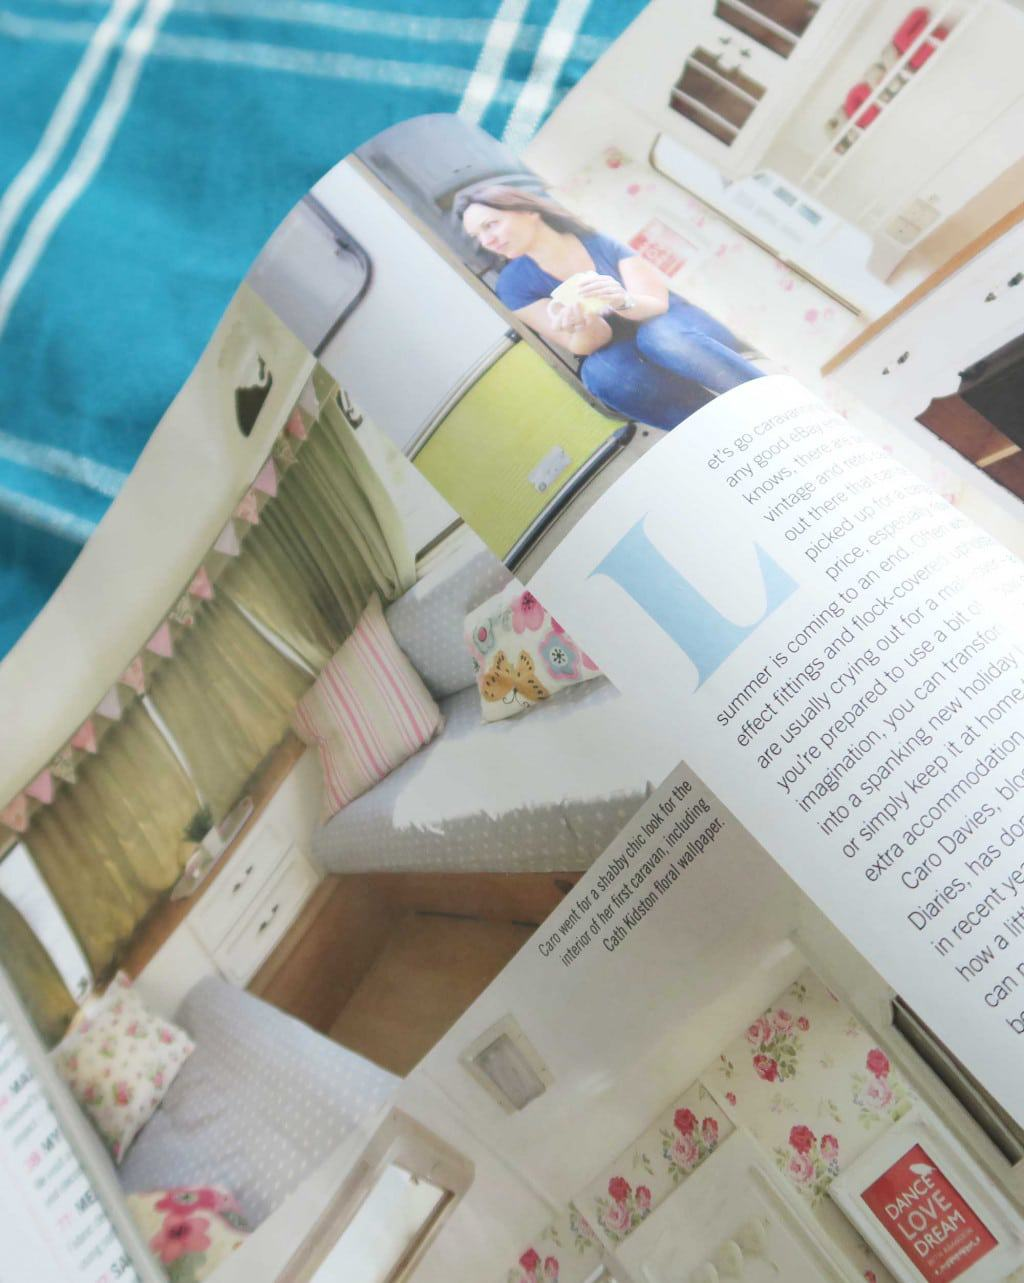 Our caravan makeover in Reloved magazine!